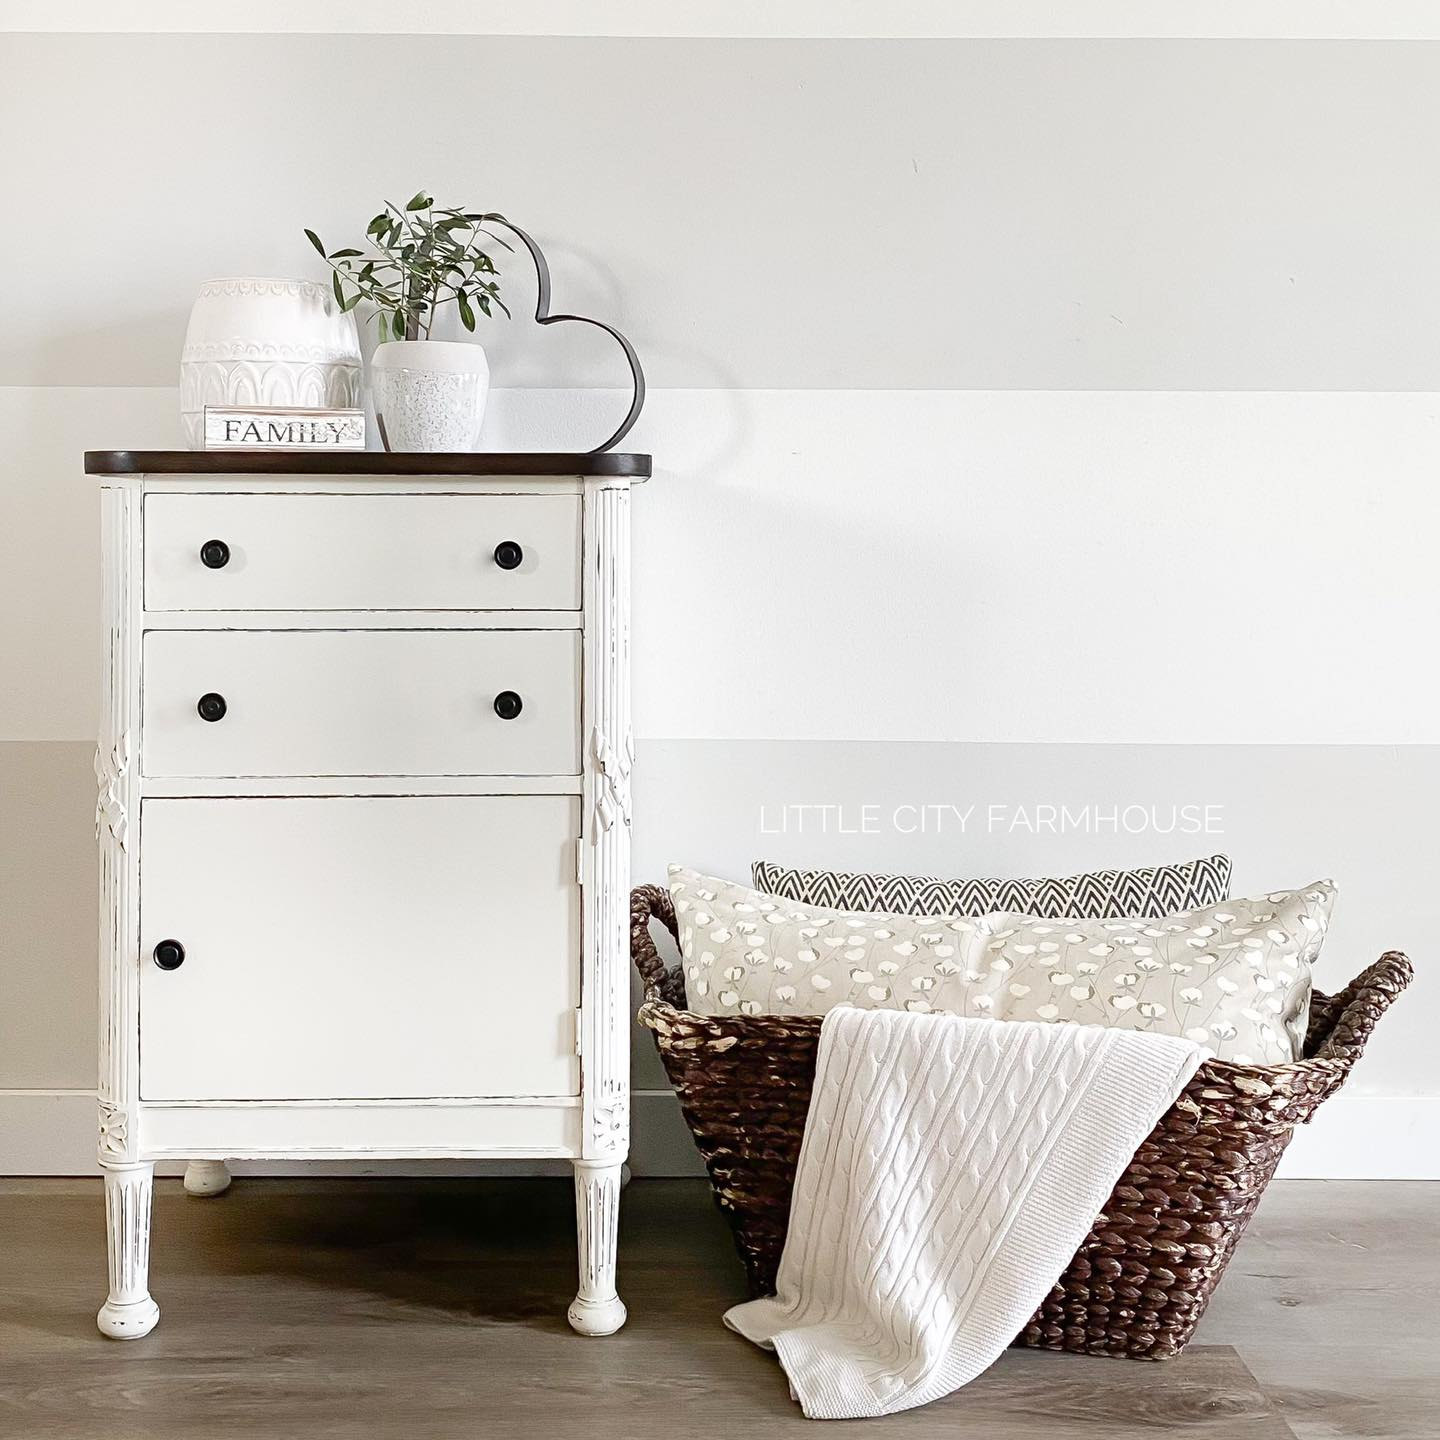 Accent/Storage Table in Vanilla Frosting